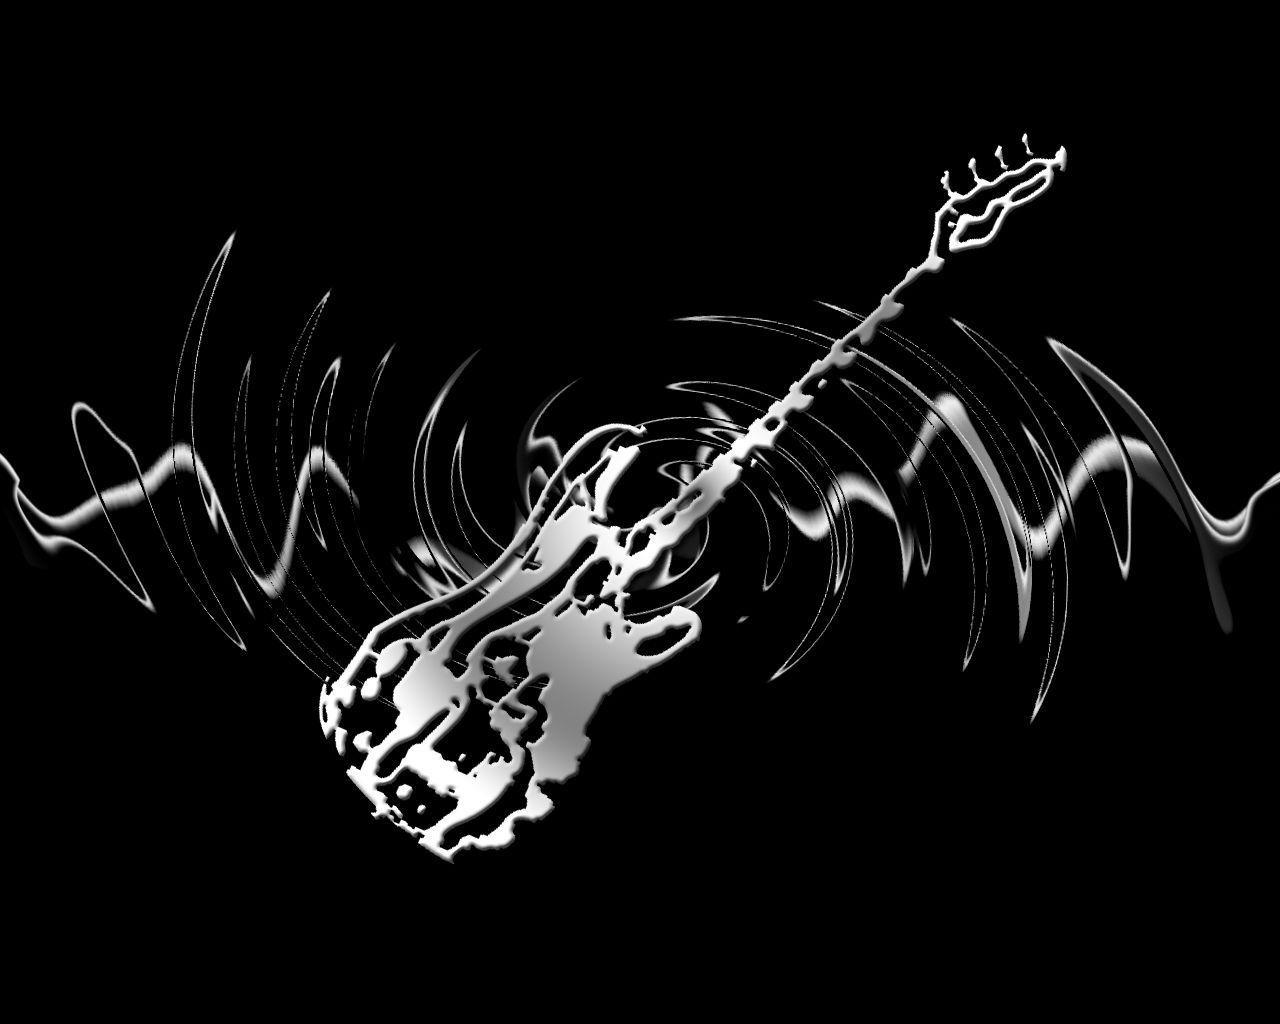 Skeleton Bass Guitar by isaacrtree